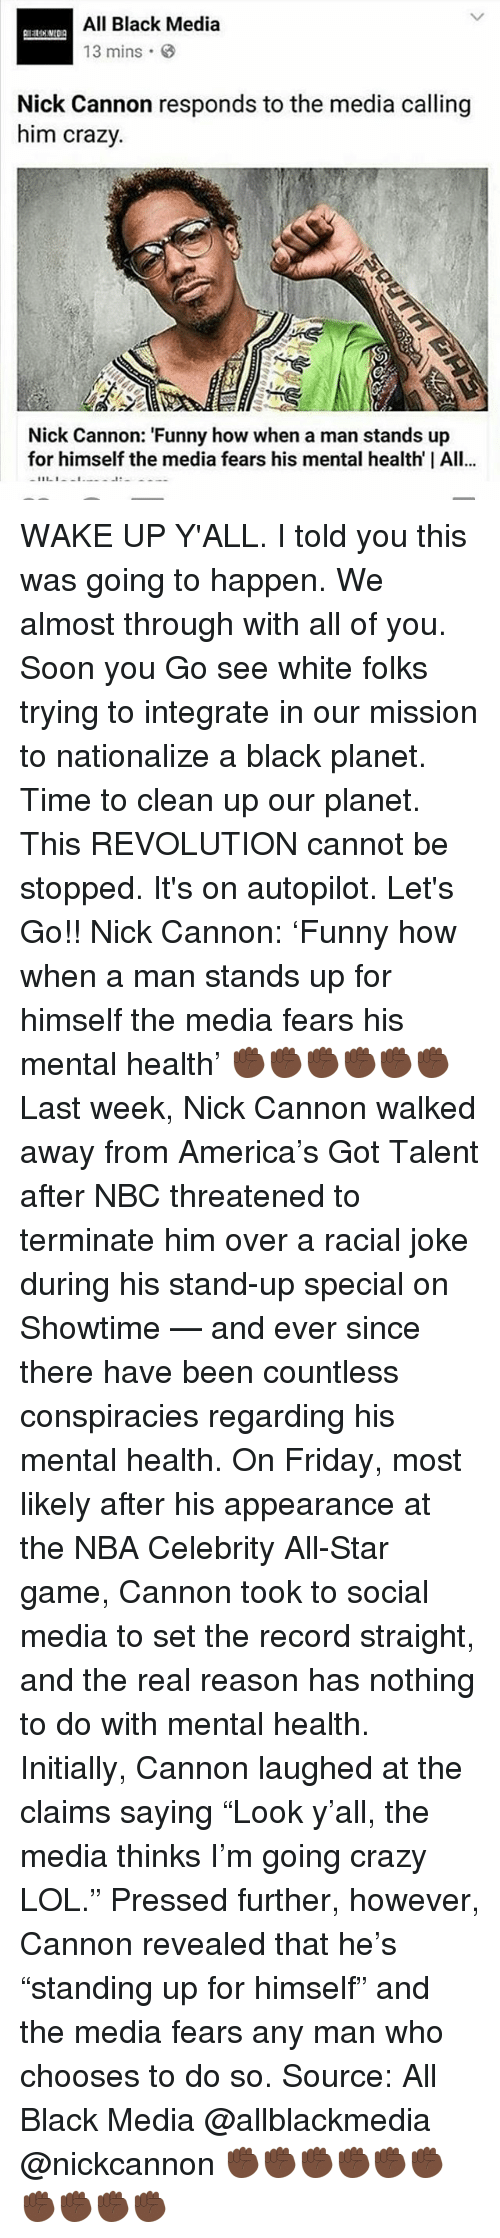 """initiation: All Black Media  13 mins  Nick Cannon responds to the media calling  him crazy.  Nick Cannon: """"Funny how when a man stands up  for himself the media fears his mental health I All...  11 1 WAKE UP Y'ALL. I told you this was going to happen. We almost through with all of you. Soon you Go see white folks trying to integrate in our mission to nationalize a black planet. Time to clean up our planet. This REVOLUTION cannot be stopped. It's on autopilot. Let's Go!! Nick Cannon: 'Funny how when a man stands up for himself the media fears his mental health' ✊🏿✊🏿✊🏿✊🏿✊🏿✊🏿 Last week, Nick Cannon walked away from America's Got Talent after NBC threatened to terminate him over a racial joke during his stand-up special on Showtime — and ever since there have been countless conspiracies regarding his mental health. On Friday, most likely after his appearance at the NBA Celebrity All-Star game, Cannon took to social media to set the record straight, and the real reason has nothing to do with mental health. Initially, Cannon laughed at the claims saying """"Look y'all, the media thinks I'm going crazy LOL."""" Pressed further, however, Cannon revealed that he's """"standing up for himself"""" and the media fears any man who chooses to do so. Source: All Black Media @allblackmedia @nickcannon ✊🏿✊🏿✊🏿✊🏿✊🏿✊🏿✊🏿✊🏿✊🏿✊🏿"""